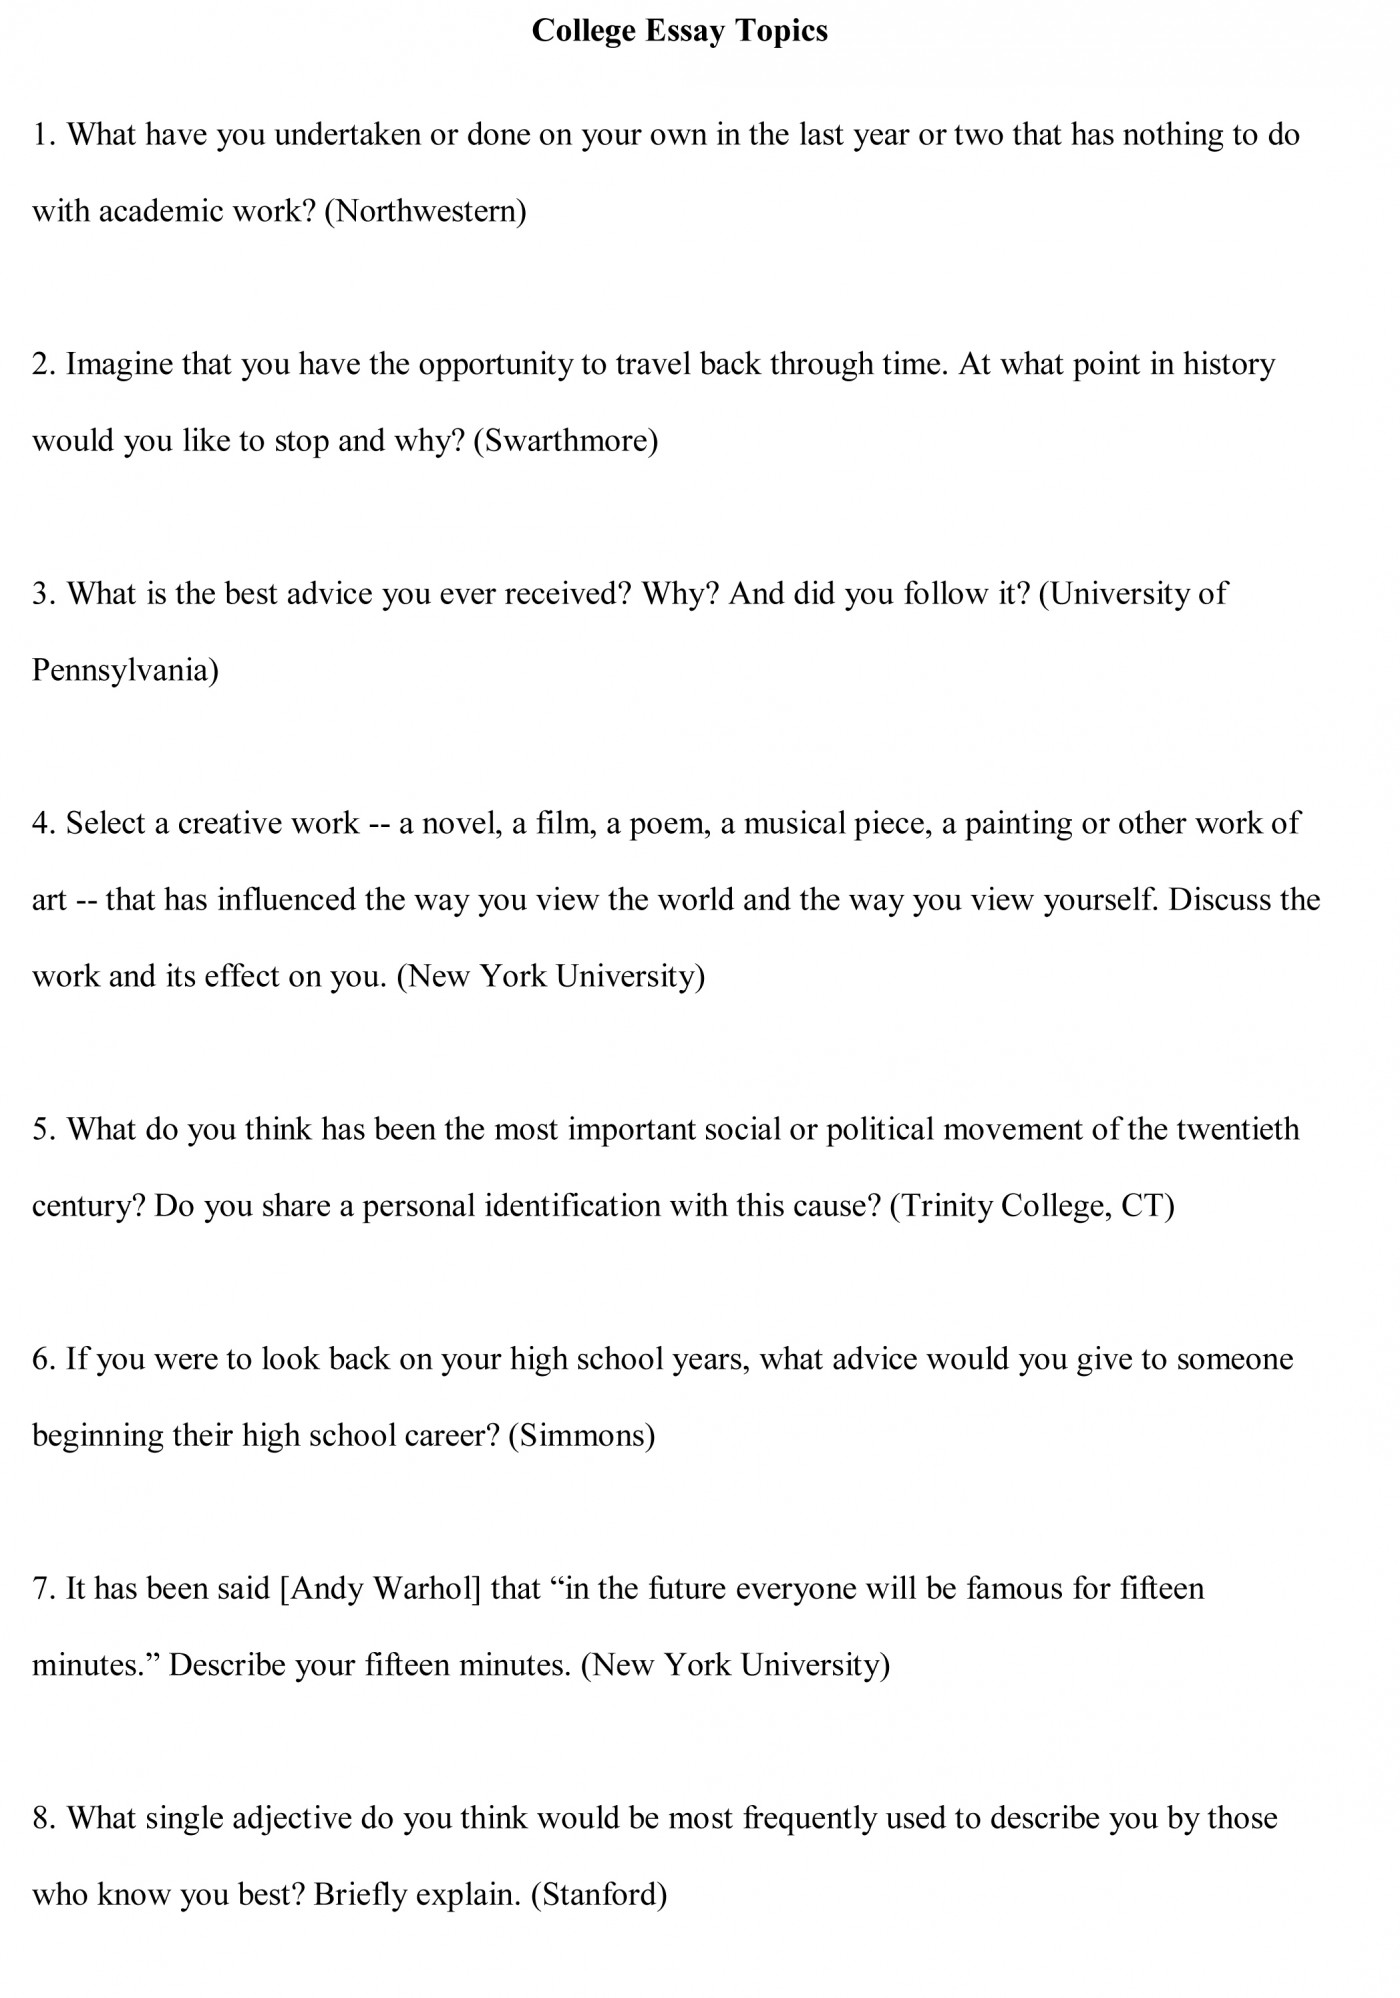 009 Research Paper Psychology Topics List College Essay Free Awesome Topic Ideas 1400